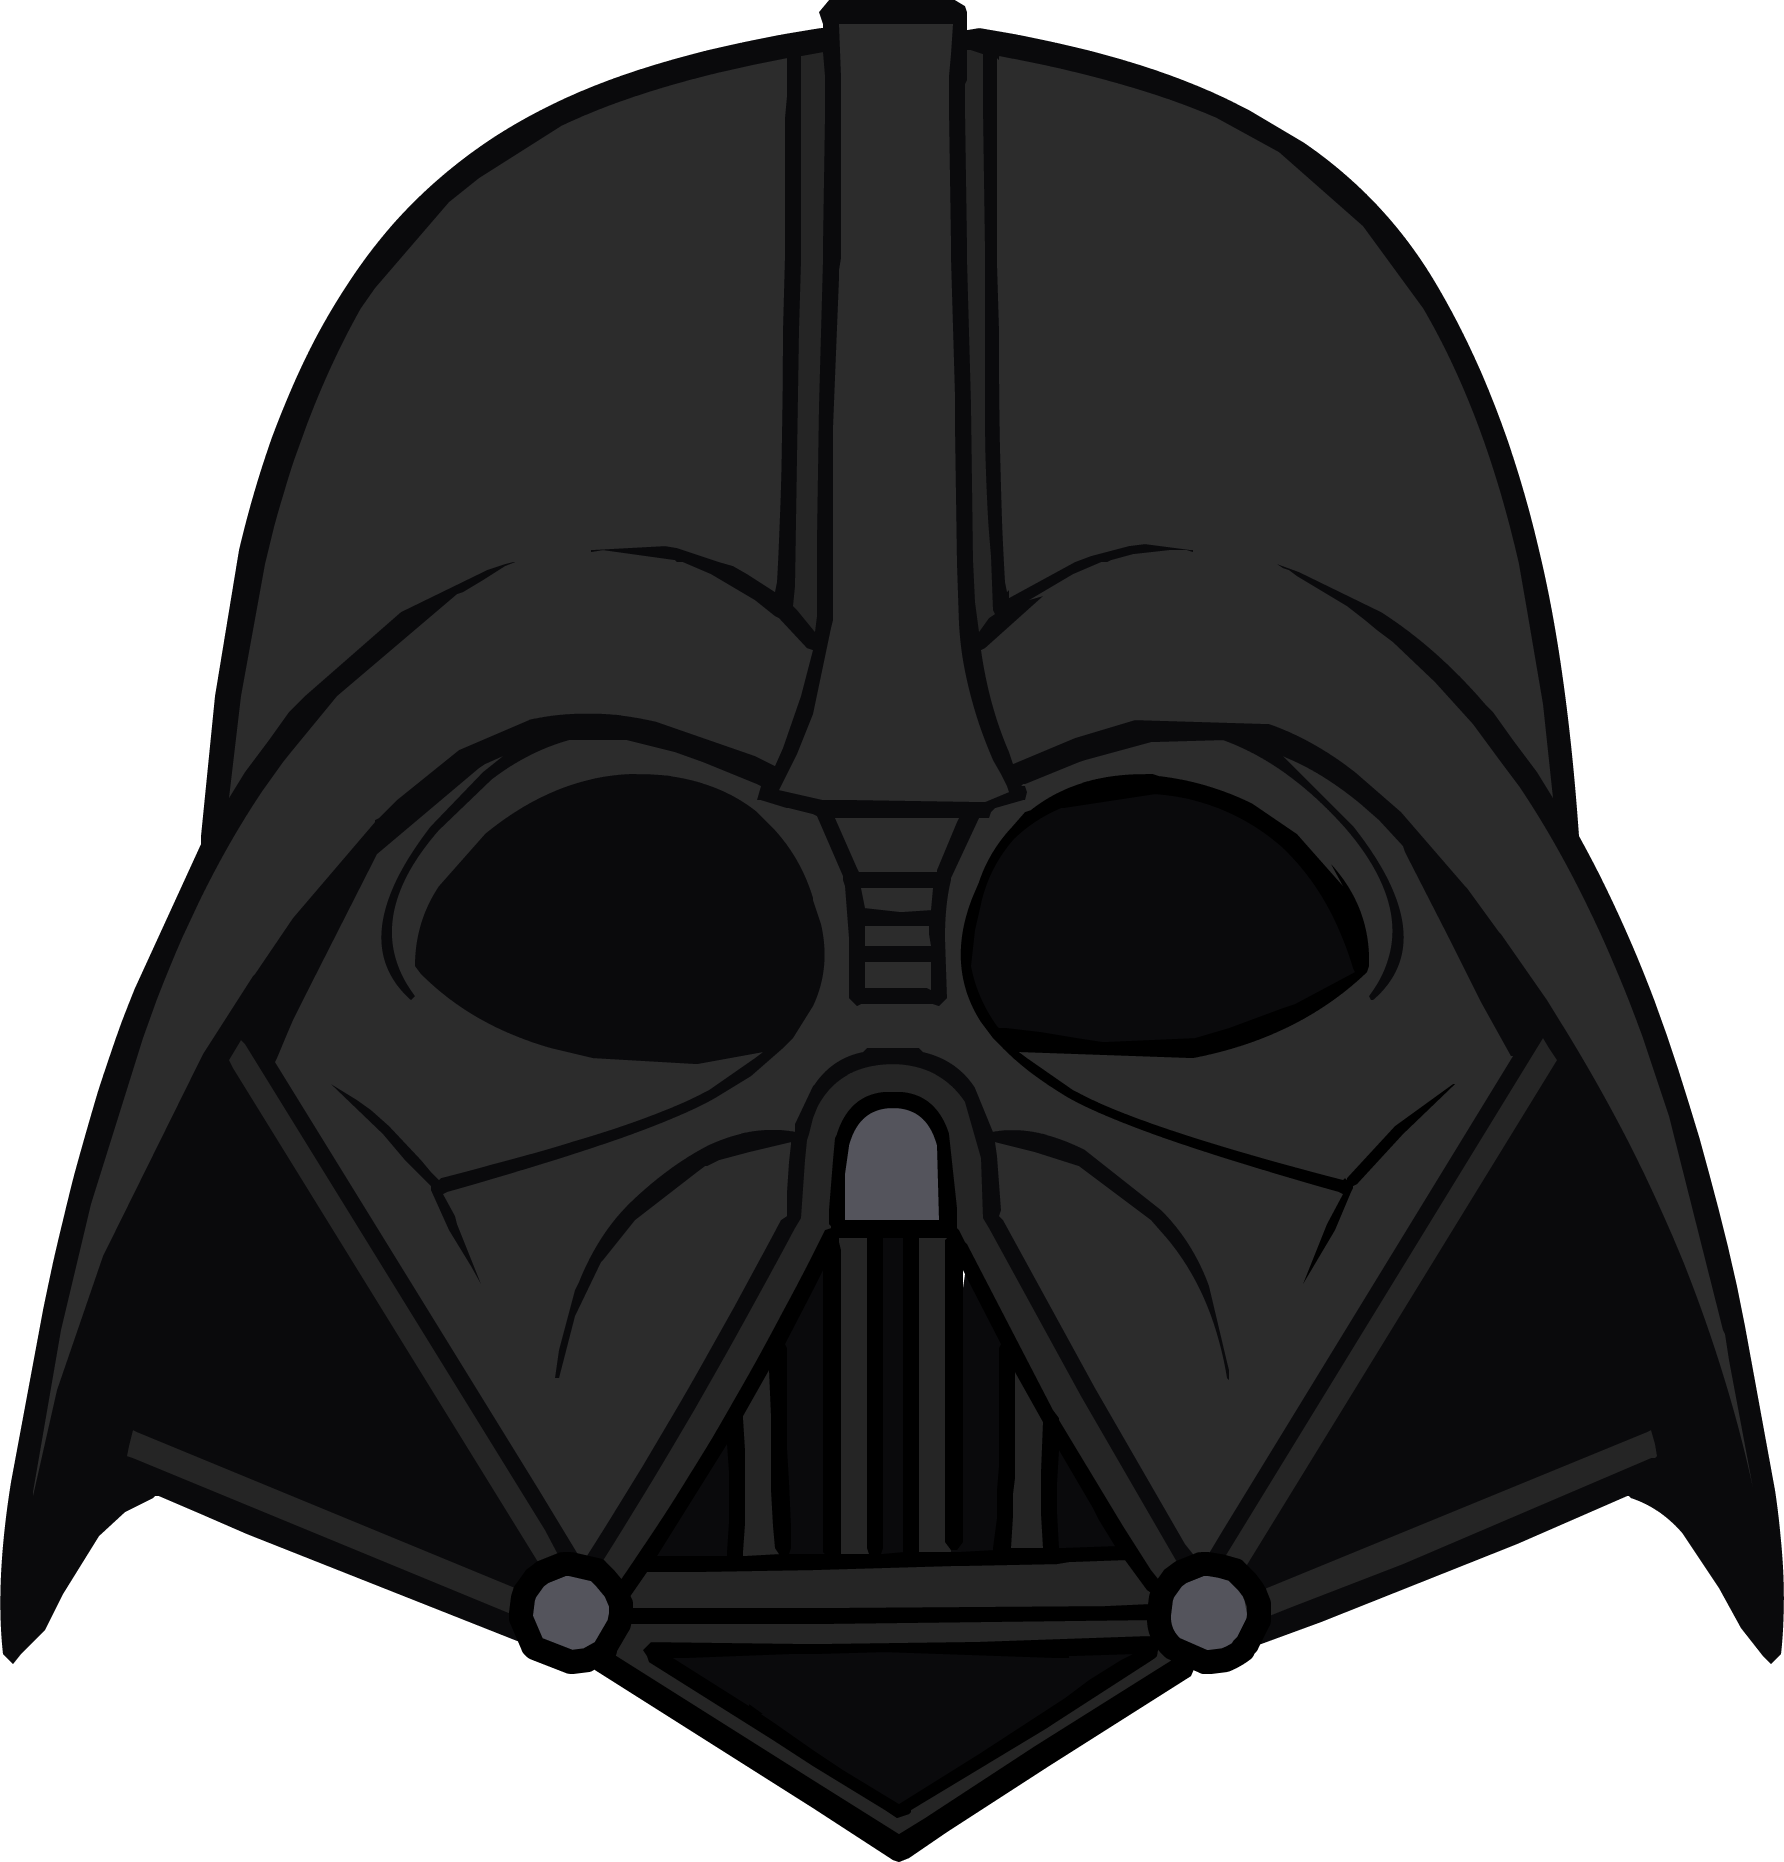 collection of mask. Starwars clipart head darth vader